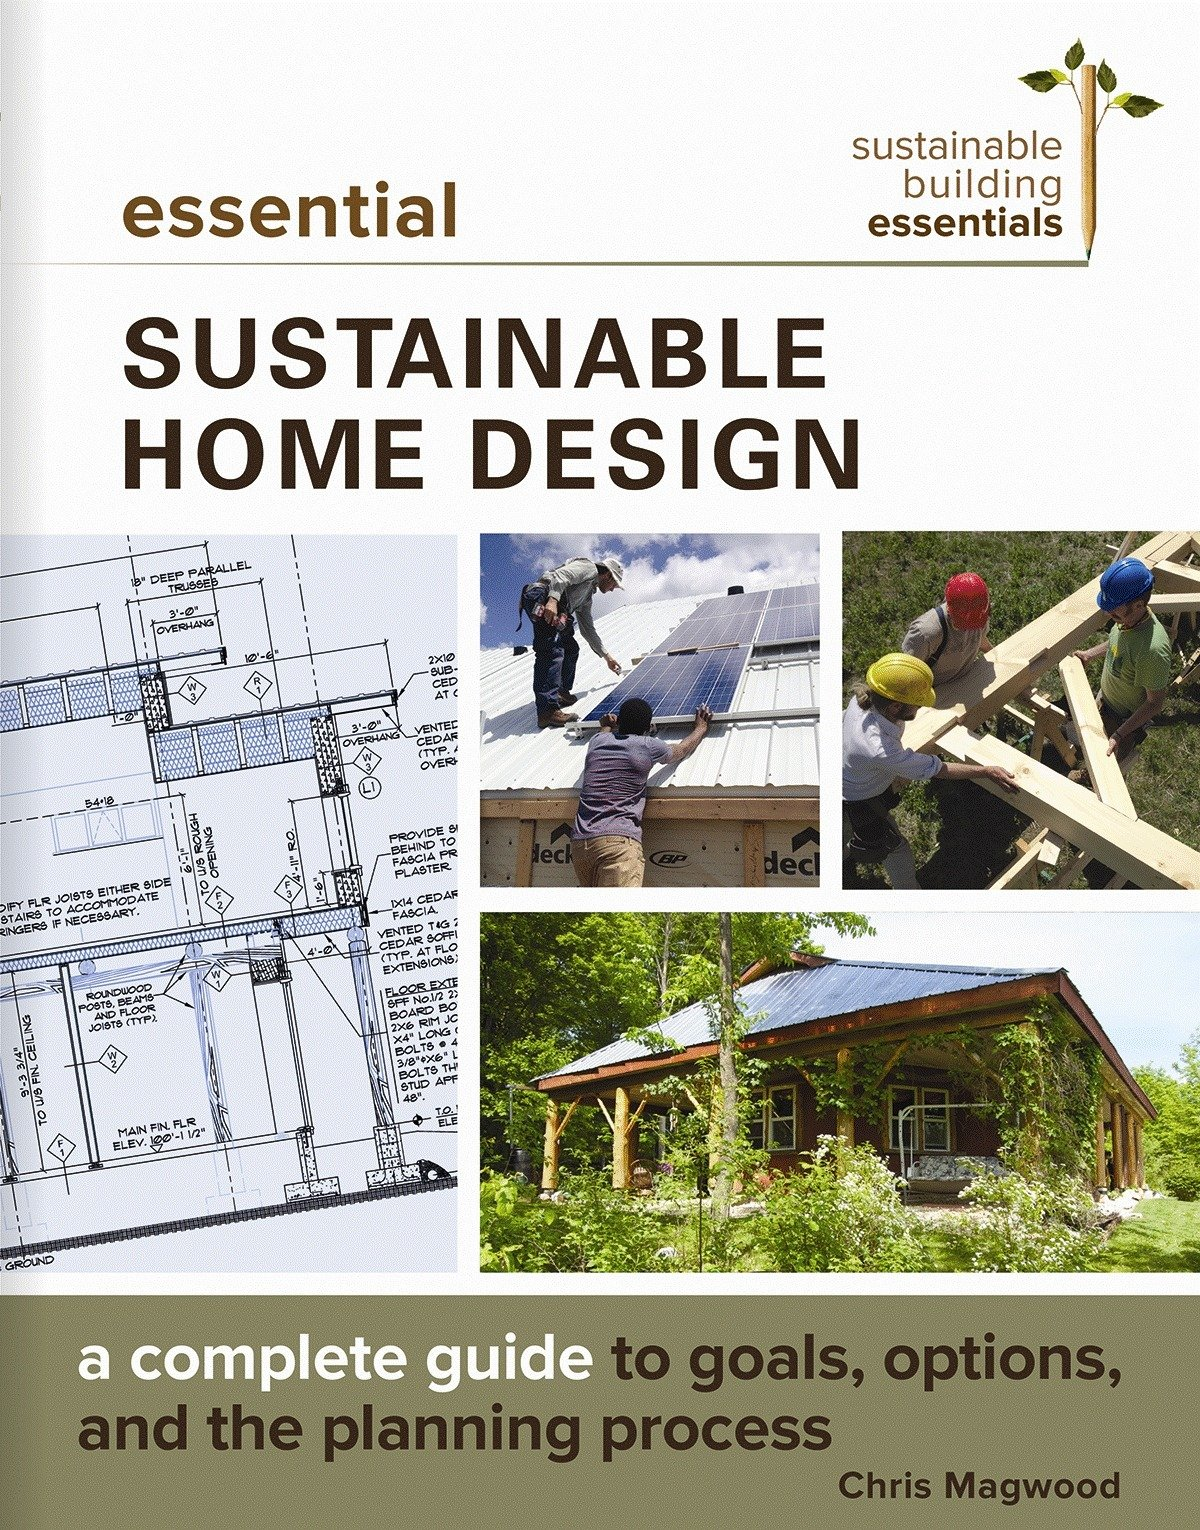 Essential Sustainable Home Design: A Complete Guide To Goals, Options, And  The Design Process (Sustainable Building Essentials Series): Chris Magwood:  ...